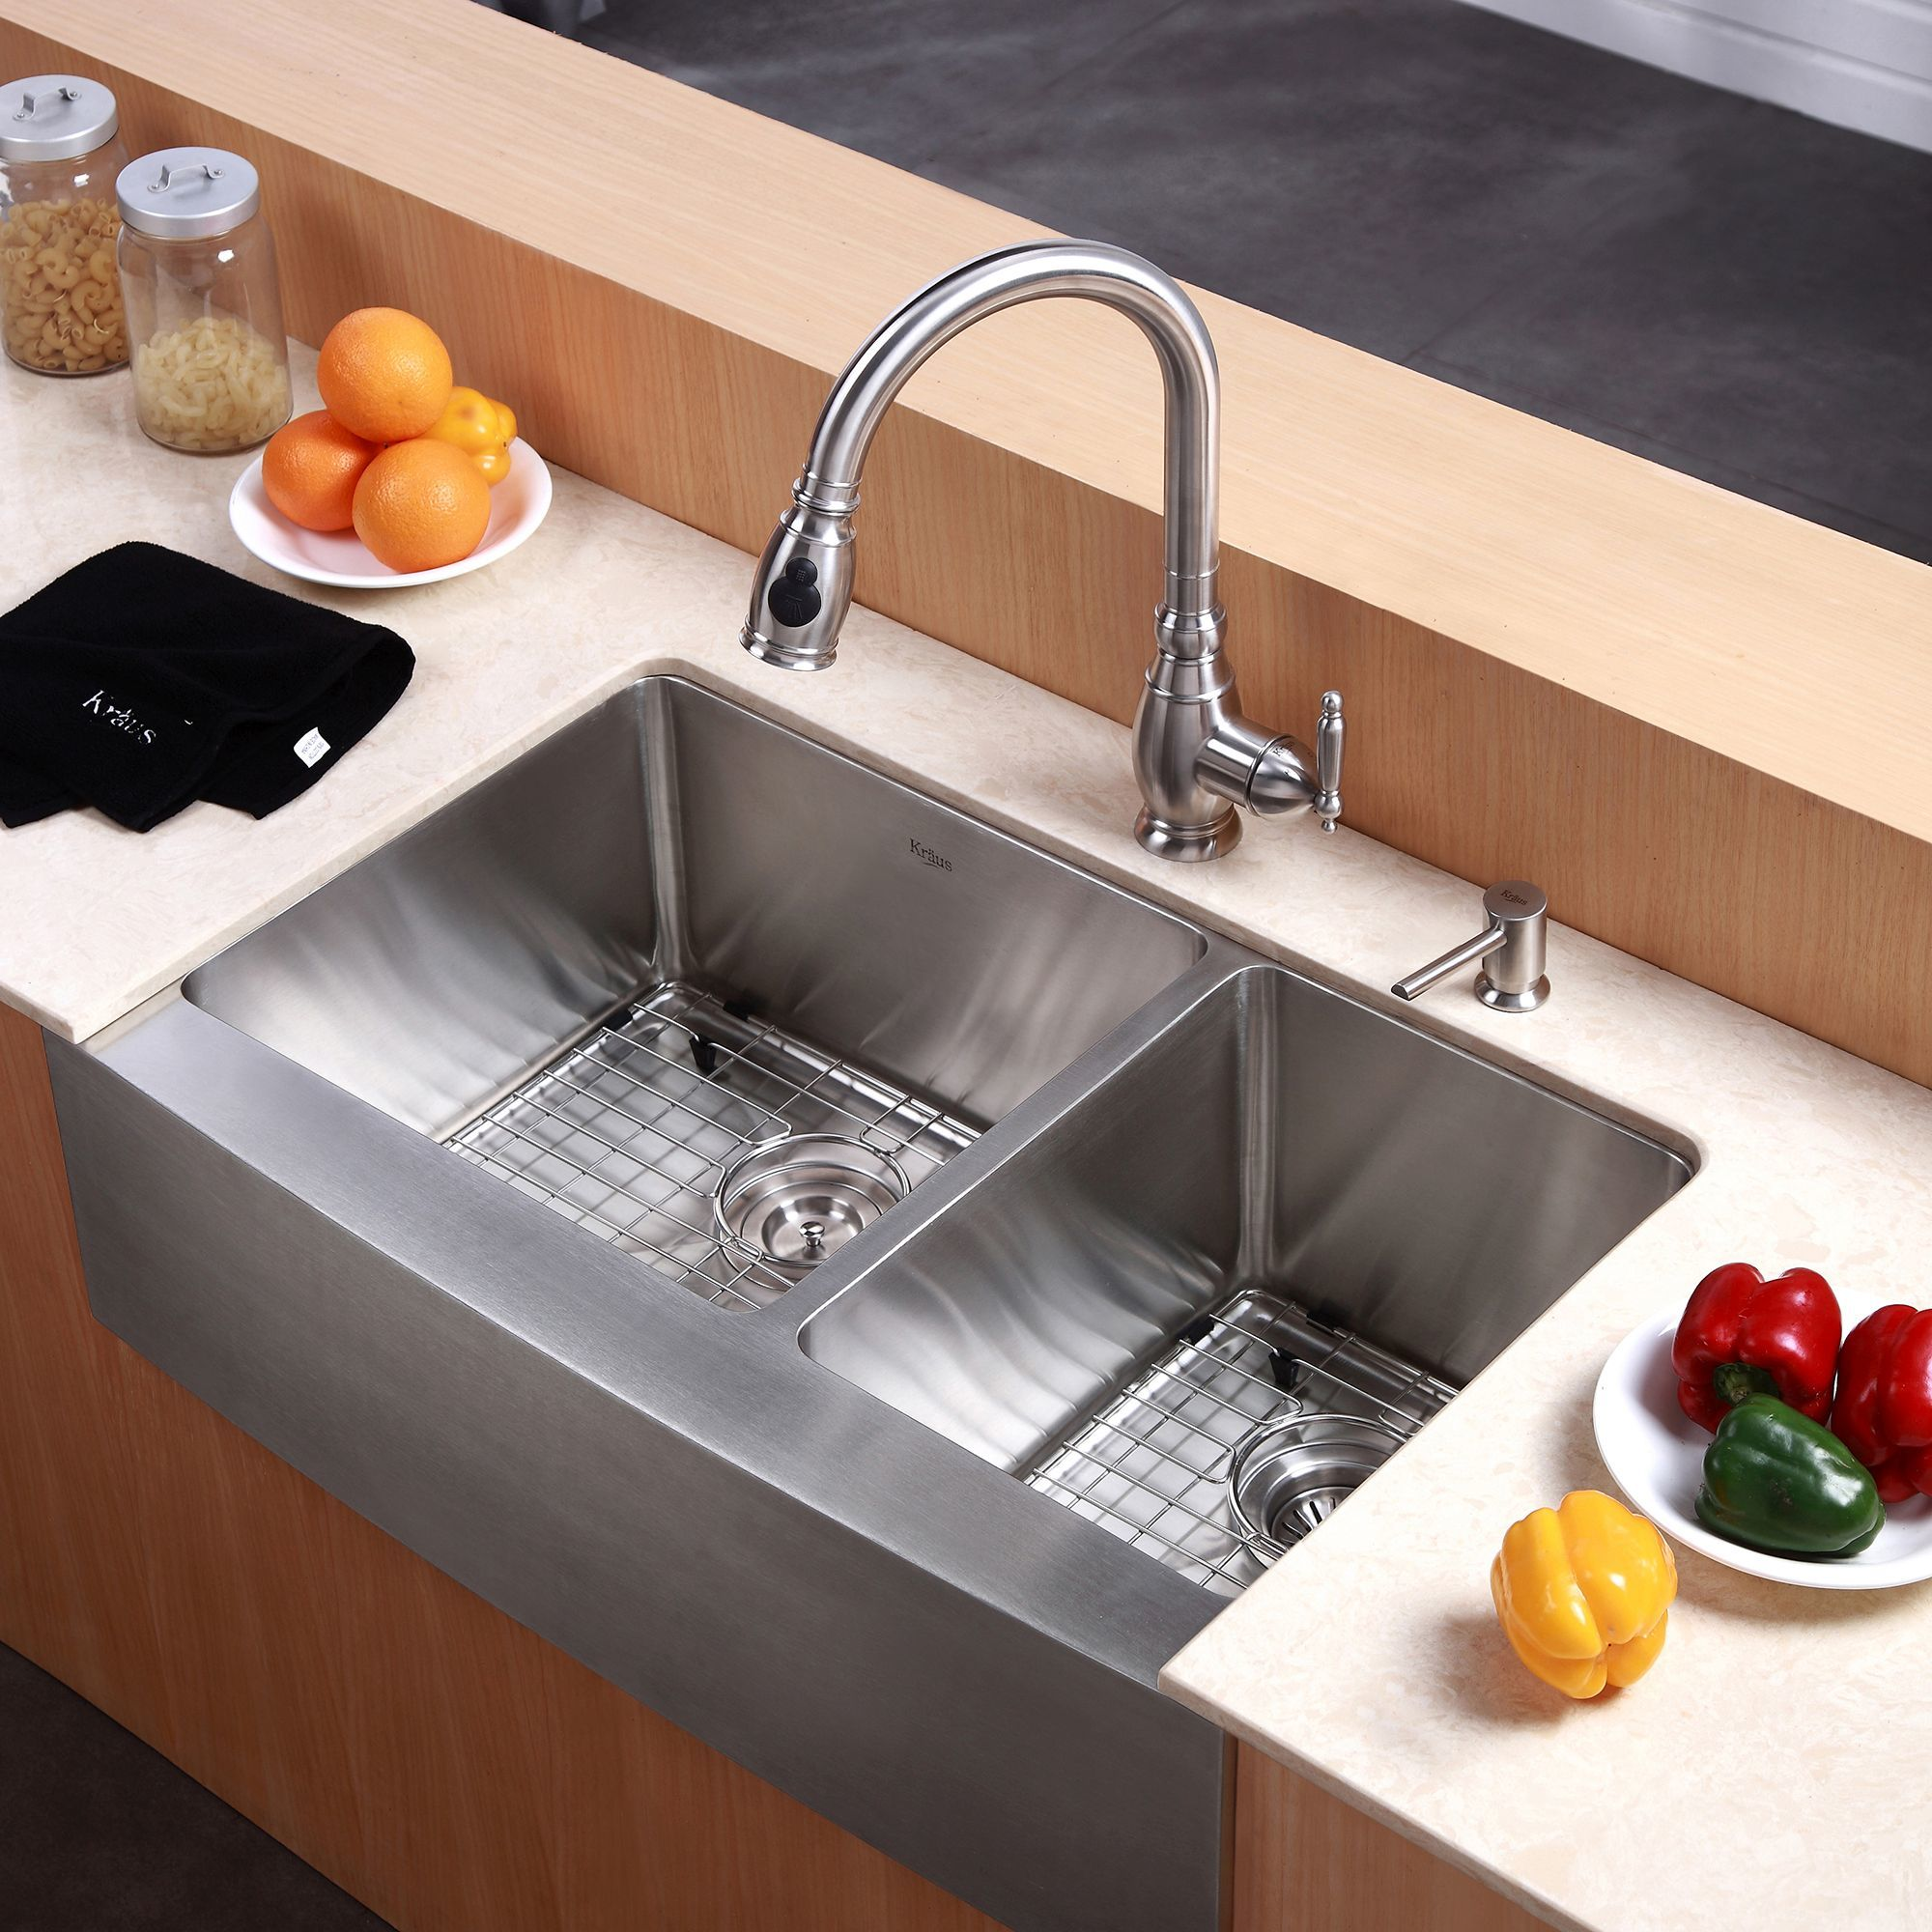 green sink faucet depth more and kitchen outdoor orating charcoal full tile fireplace plum interdesign size design with countertop materials diy modern of packages designs ideas stainless ve awesome cover liances oven